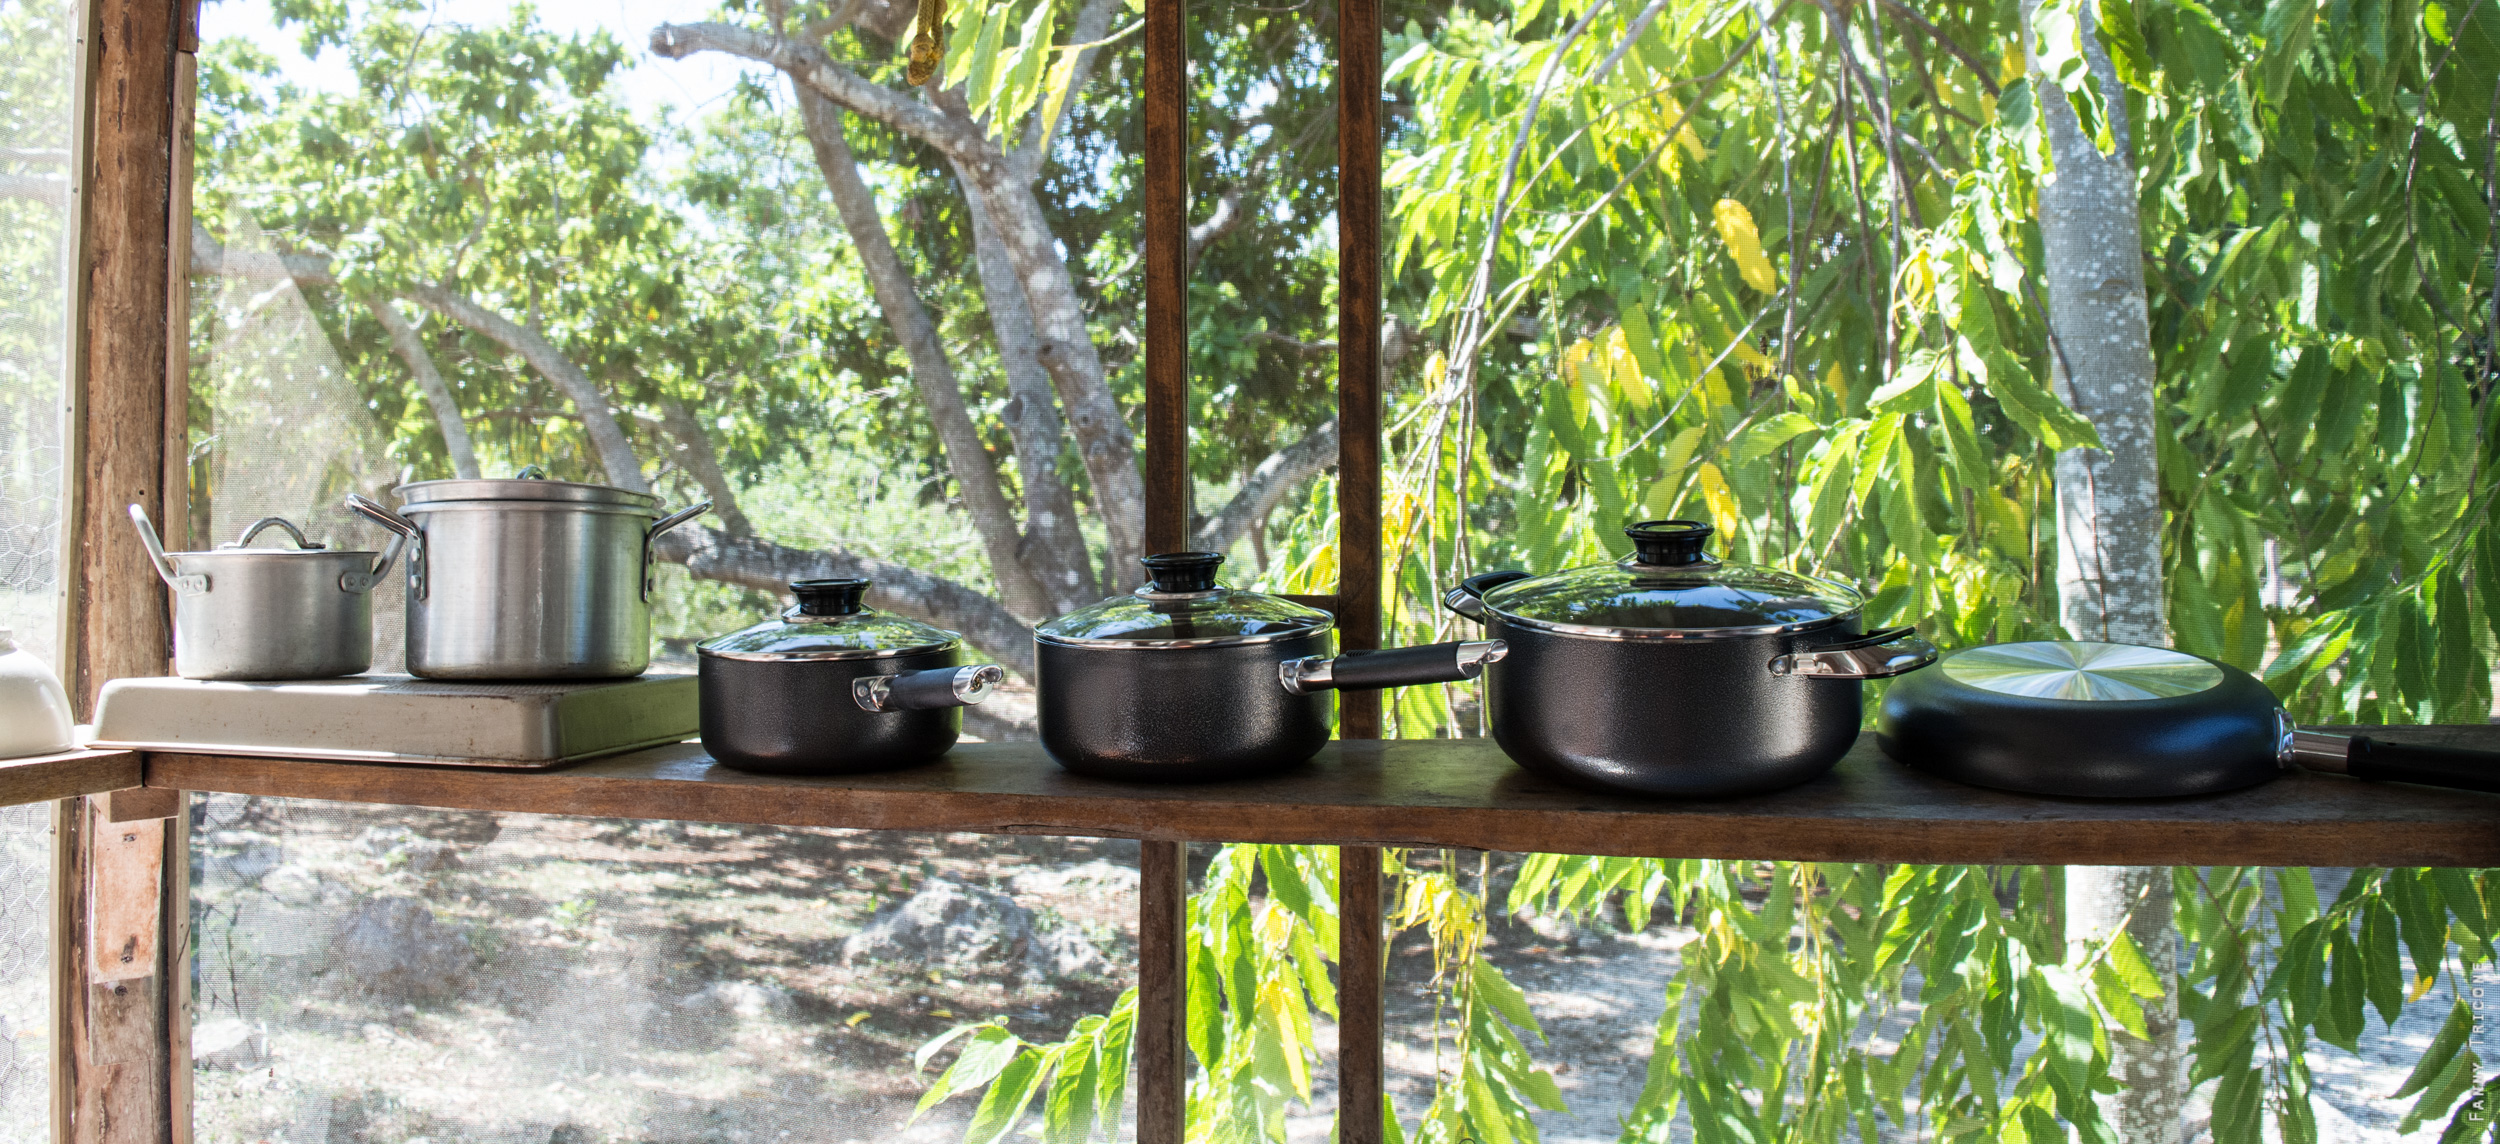 New pots and pan october 2019